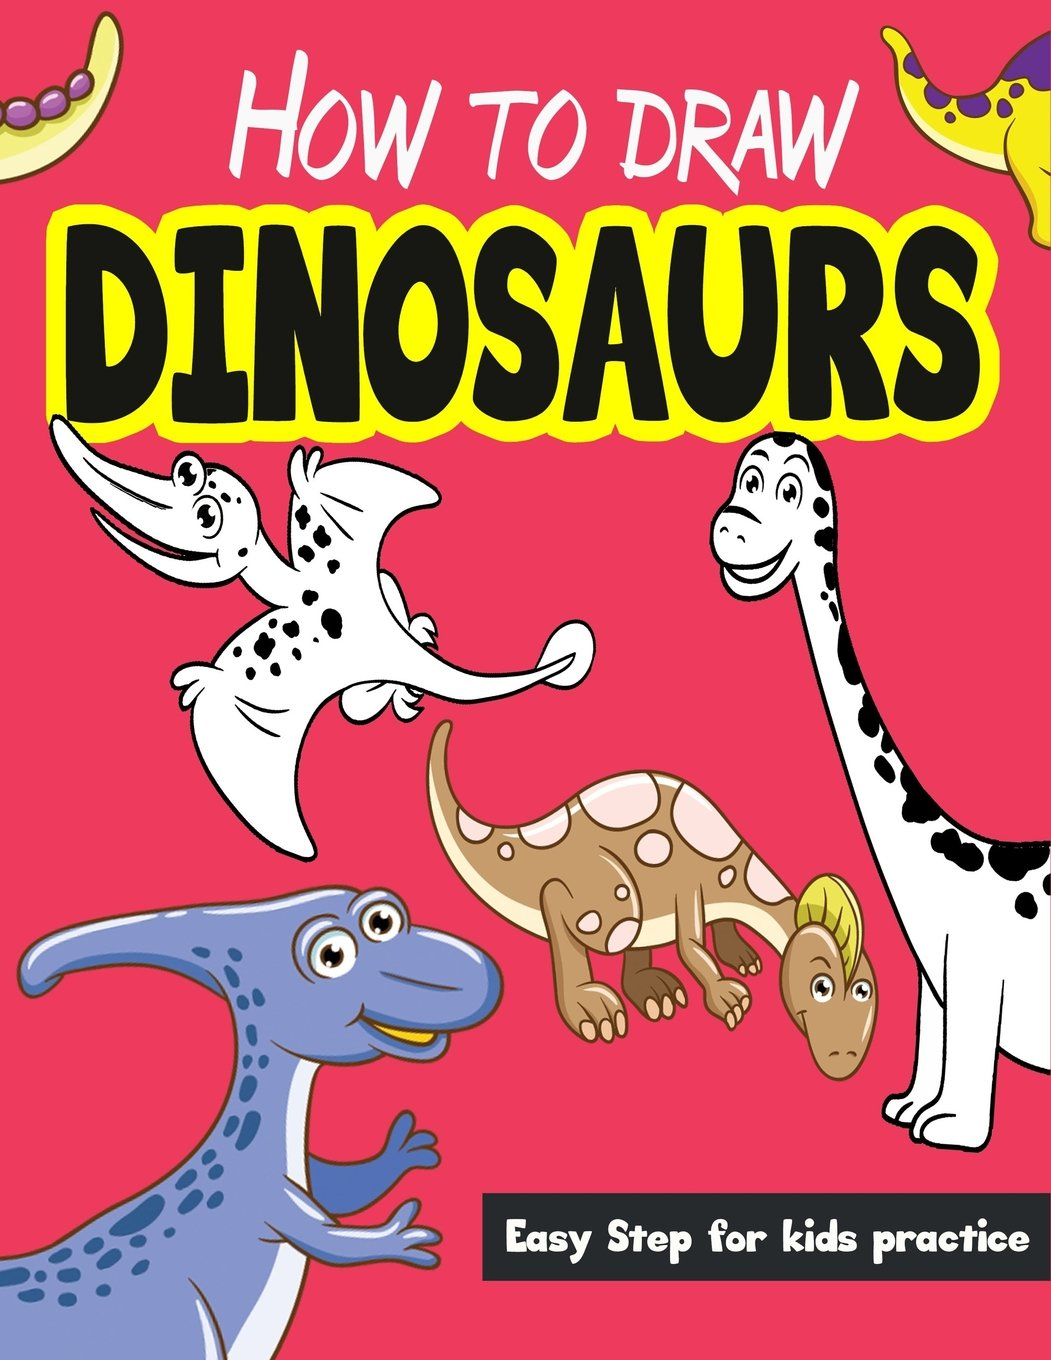 How to draw dinosaurs easy step for kids practice